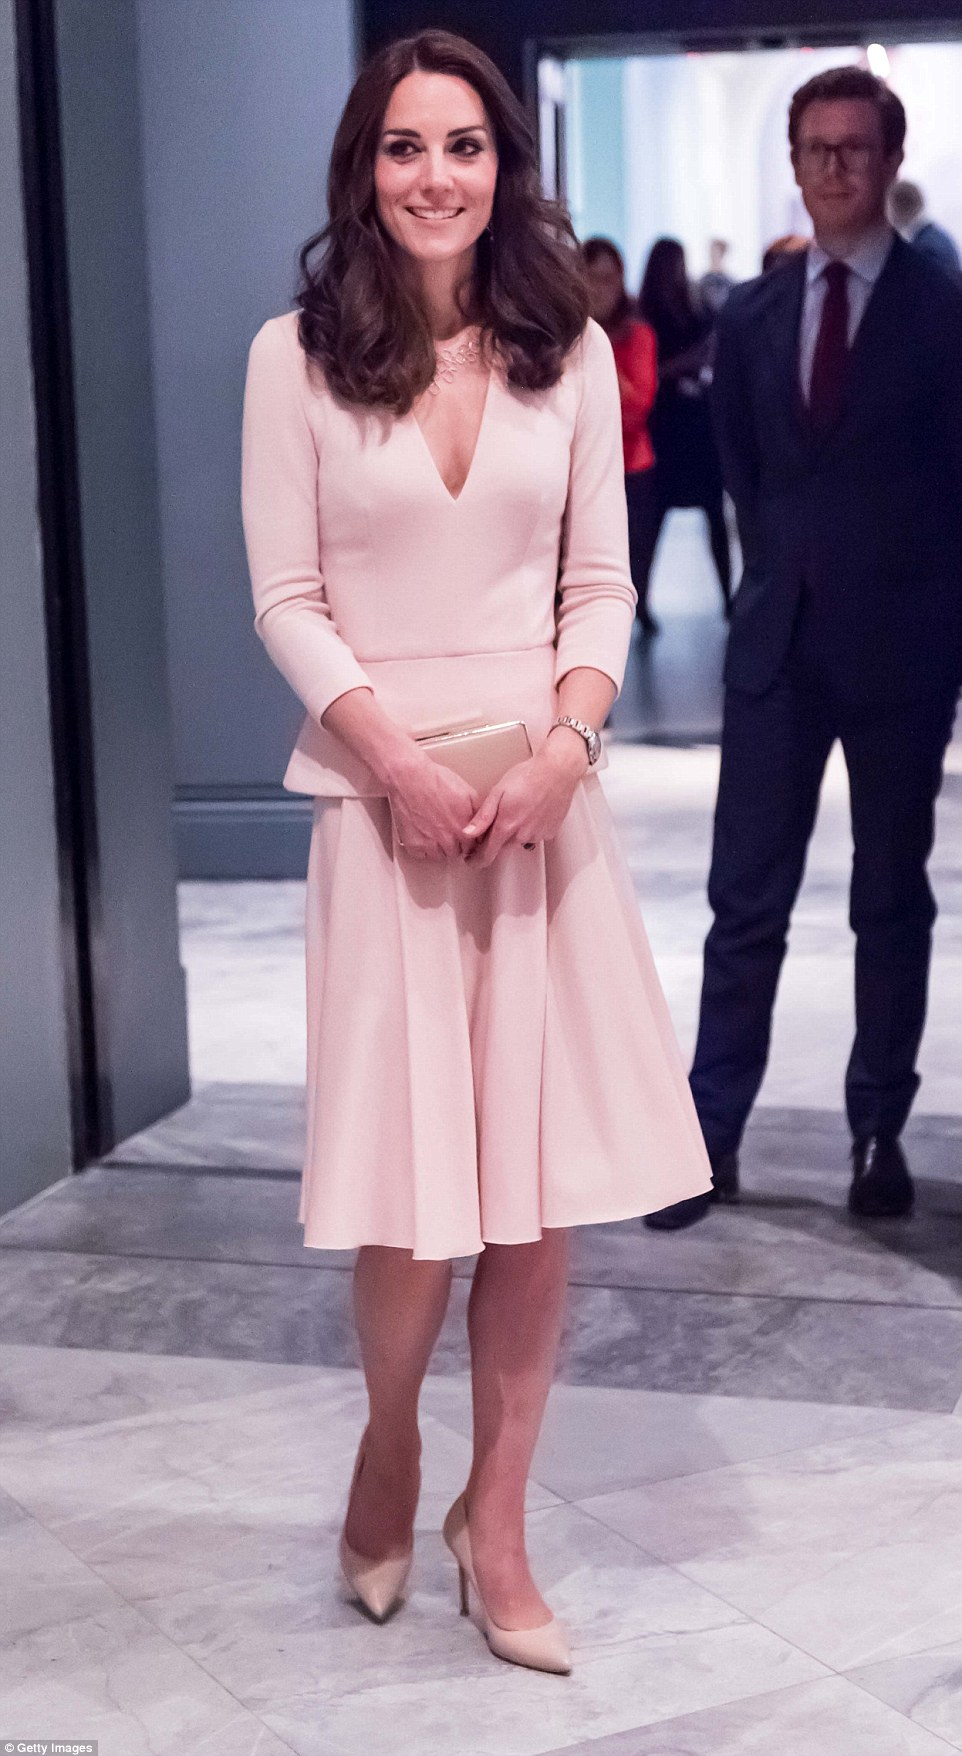 Kate Middleton picks head to toe pastels as she attends Vogue 100     Kate Middleton was concluding a busy day of engagements with a visit to the  National Portrait